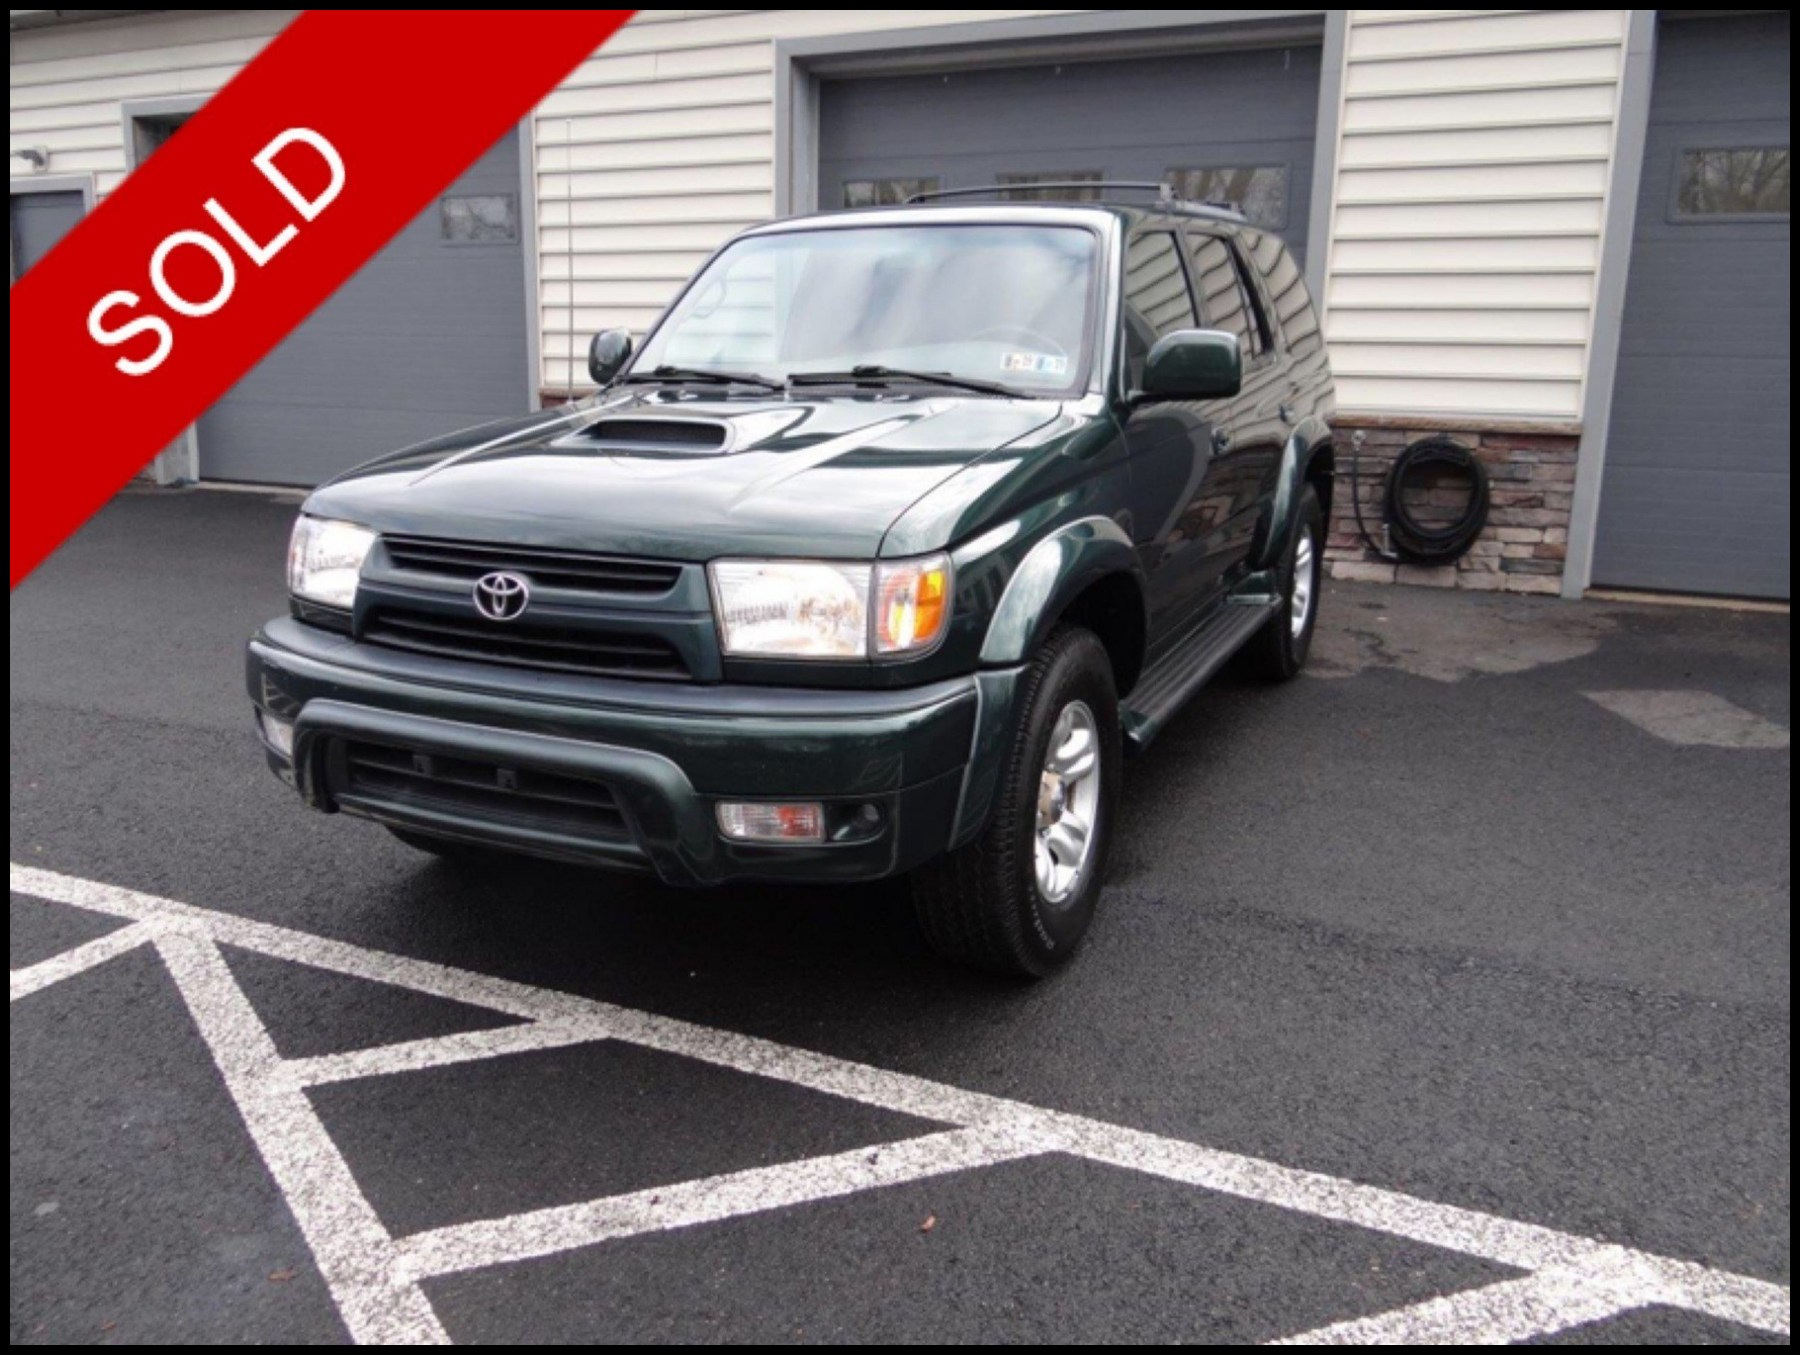 SOLD - Make: ToyotaModel: 4RunnerMileage: 130,677 miExterior Color: Imperial Jade Mica   Interior Color: TanTransmission: AutoEngine: 3.6 LDrivetrain: 4x4VIN: JT3HN86R510330229